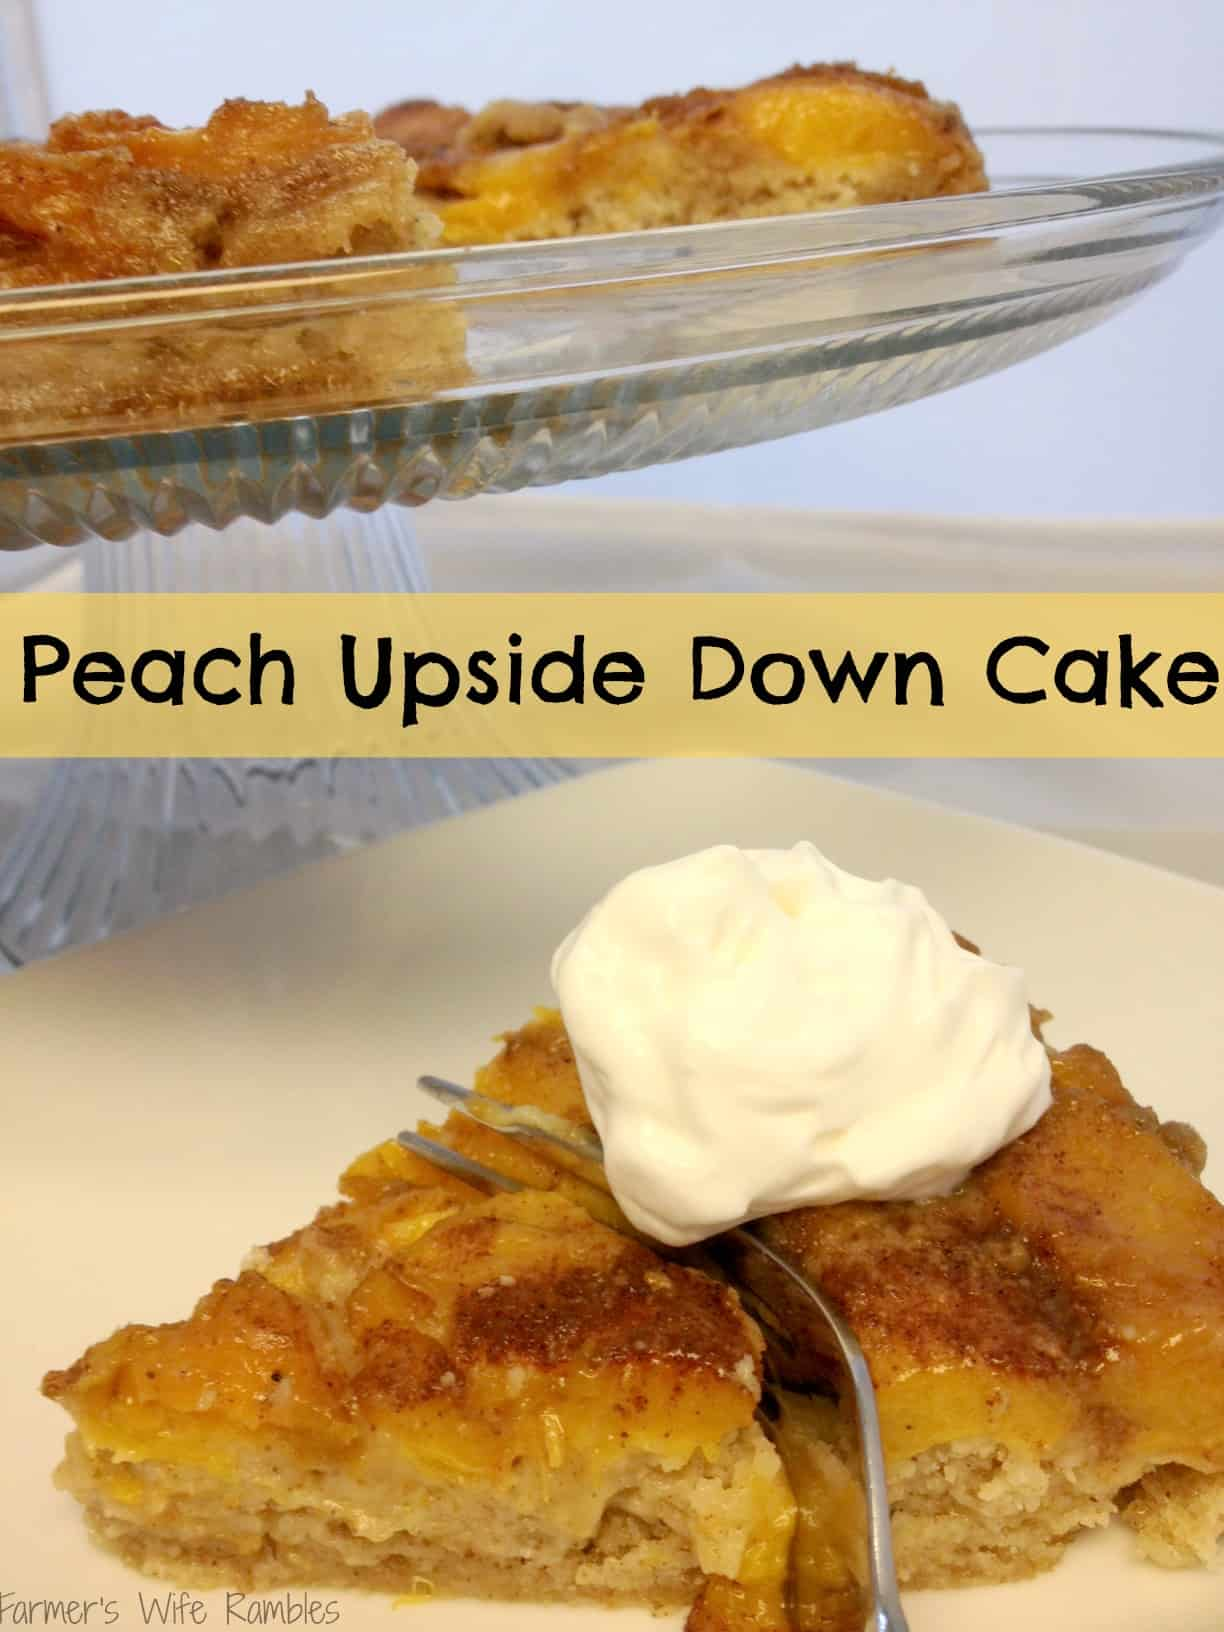 Spiced Peach Upside Down Cake - Farmer's Wife Rambles